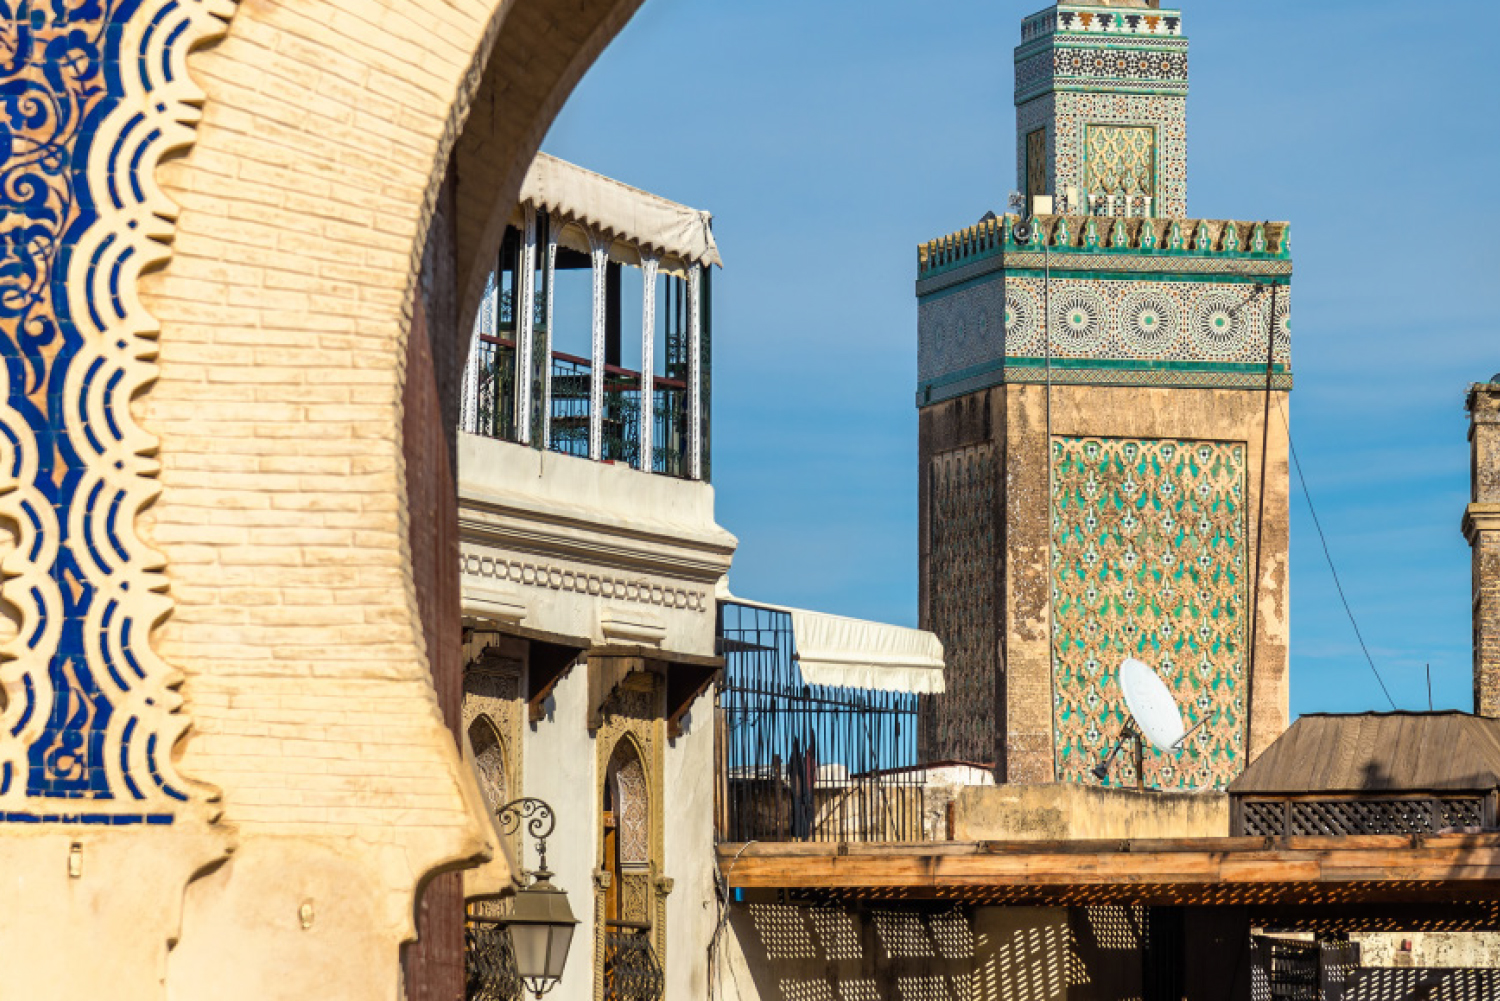 The spectacular city of Fez, Morocco